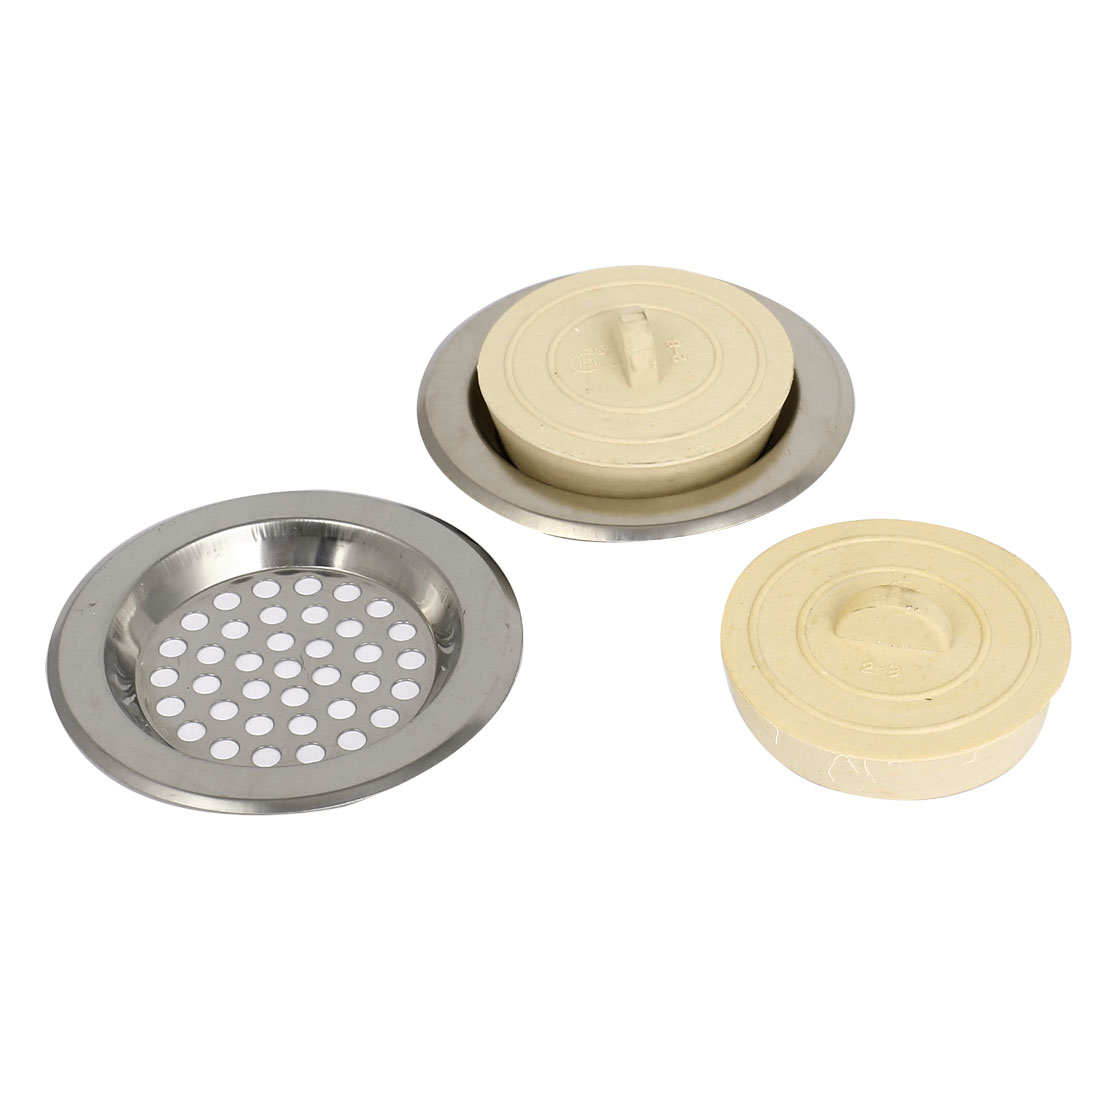 2 Pcs Stainless Steel Kitchen Sink Strainers Prevents Clogs Off White Stopper Disposal 75mm Diameter